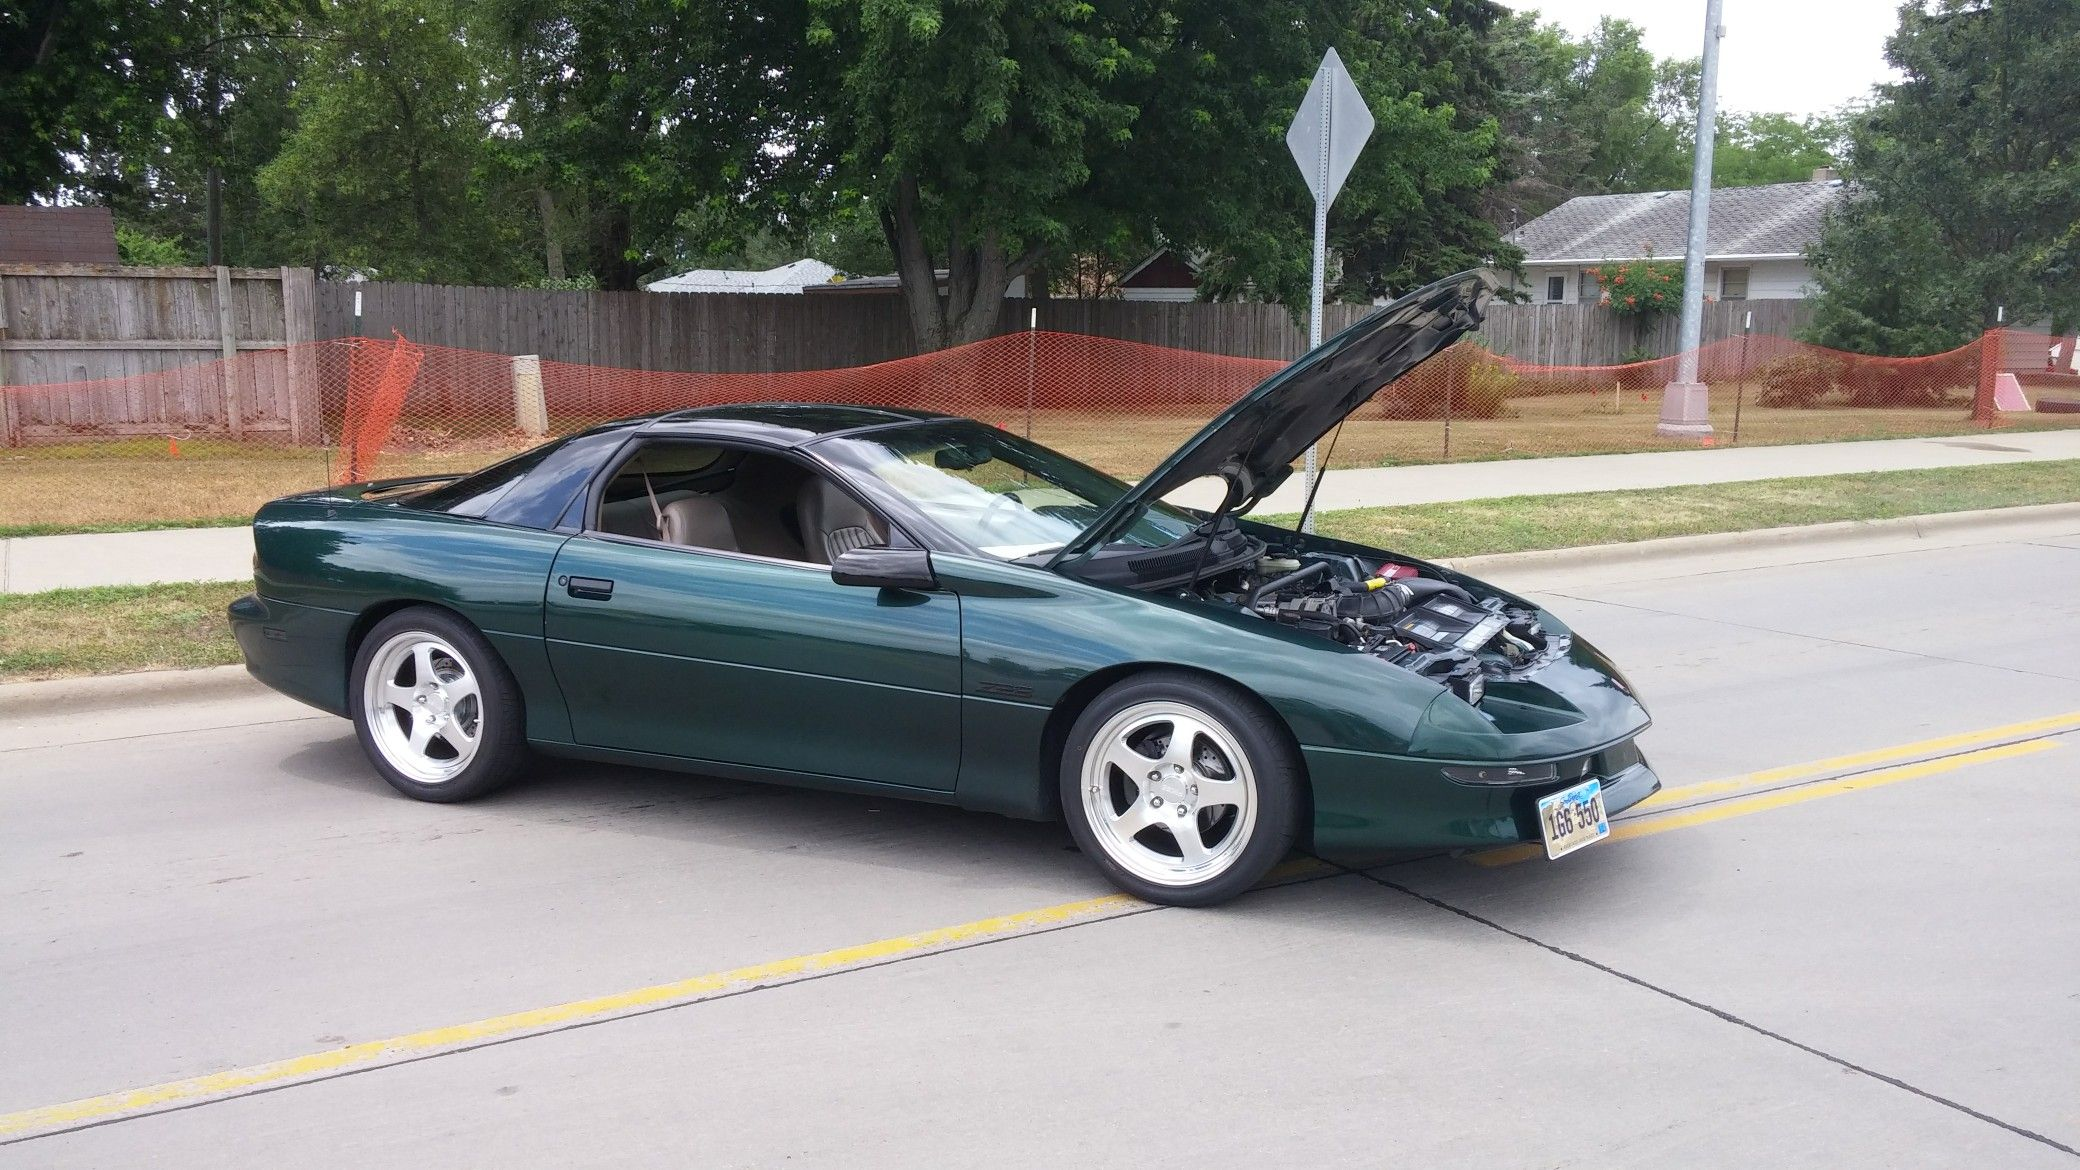 1994 Camaro Z28 383 Lt1 With A F1a Procharger Custom Lunati Cam